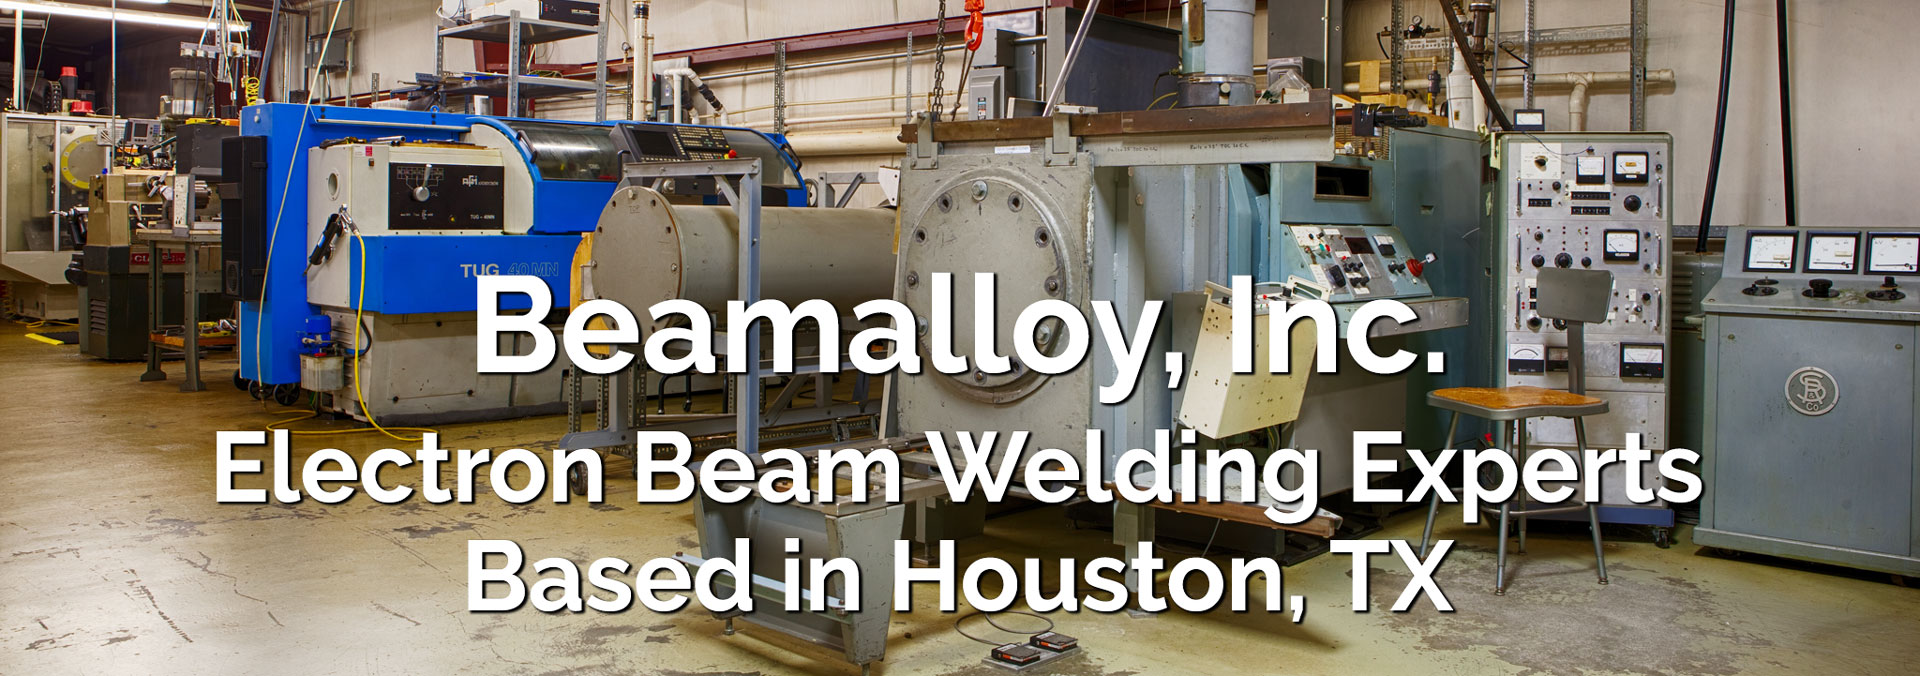 Beamalloy Inc Electron Beam Welding in Houston, TX